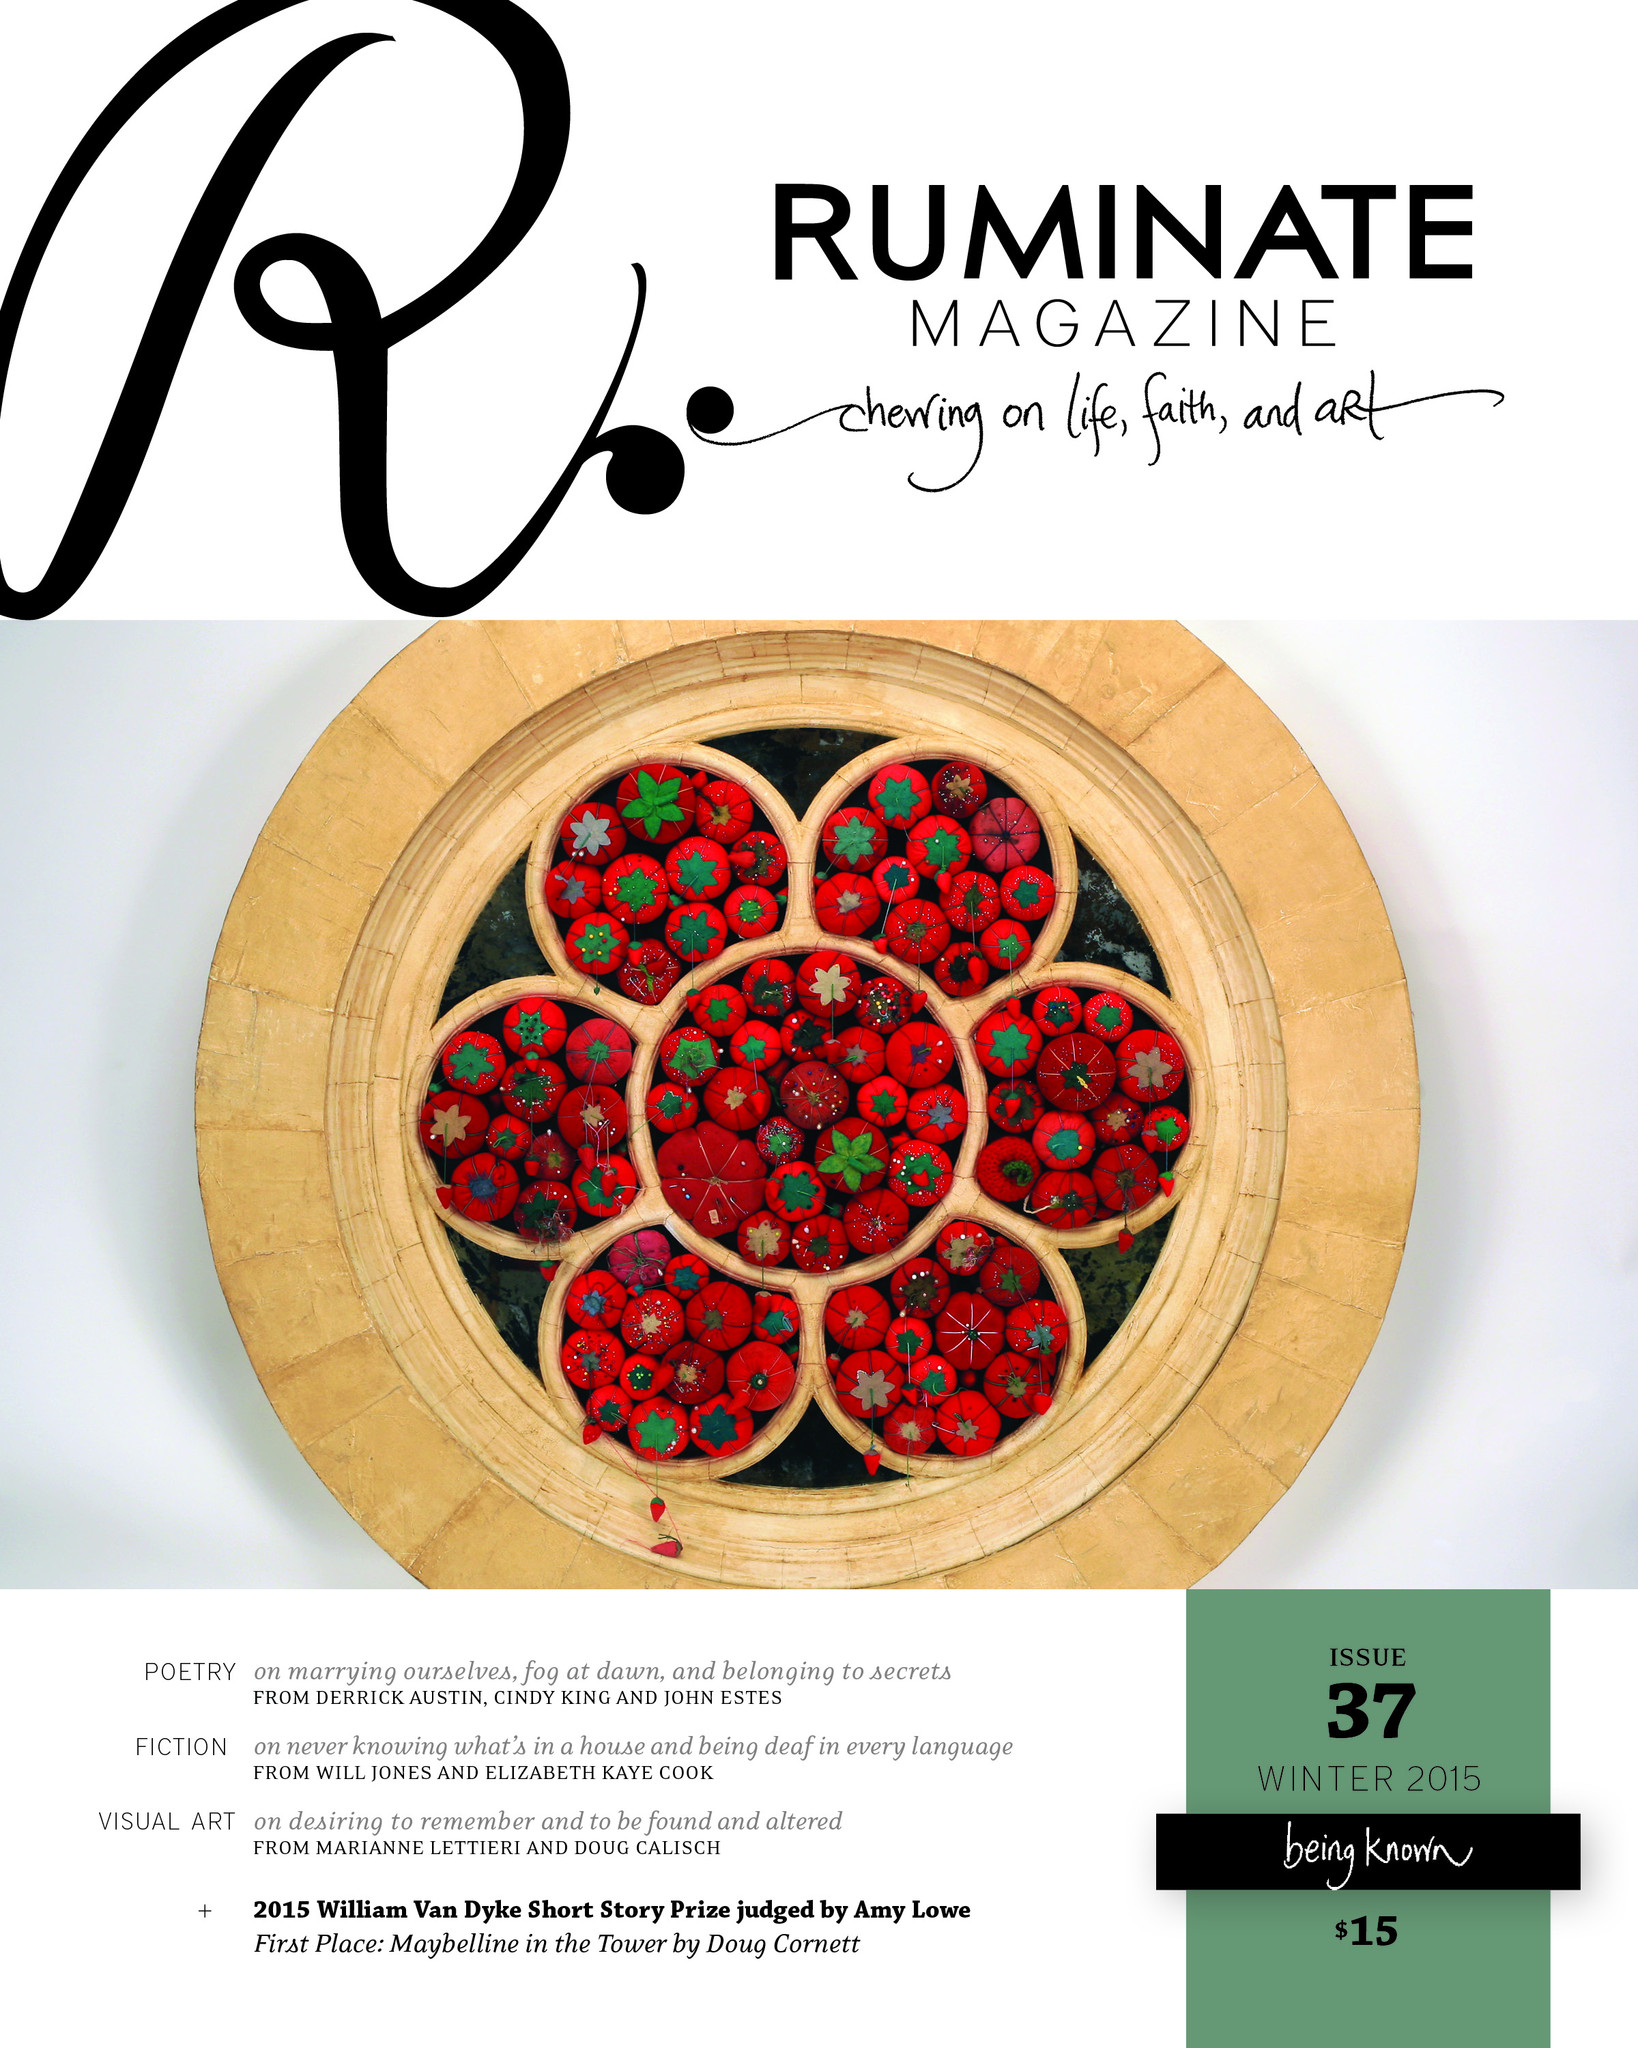 Ruminate Magazine, Issue 37: Being Known